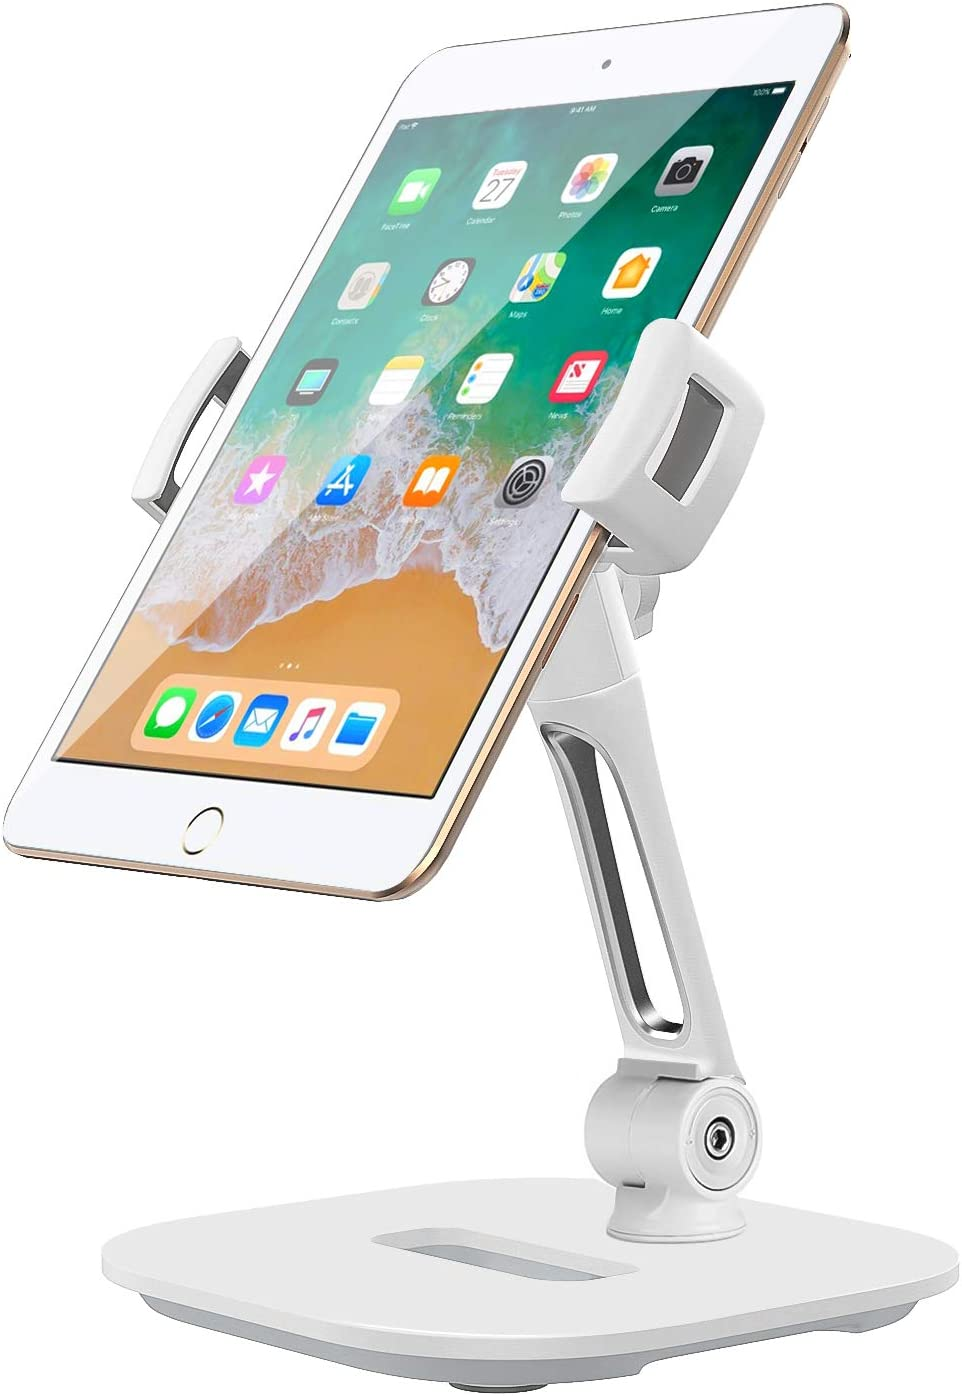 iPhone Xs Max and More Pro11 Universal 360/° Rotation Cup Holder Car Tablet Mount for iPad Pro 12.9 iPad Air 2 Galaxy Tab Note 9 Galaxy S10 Plus